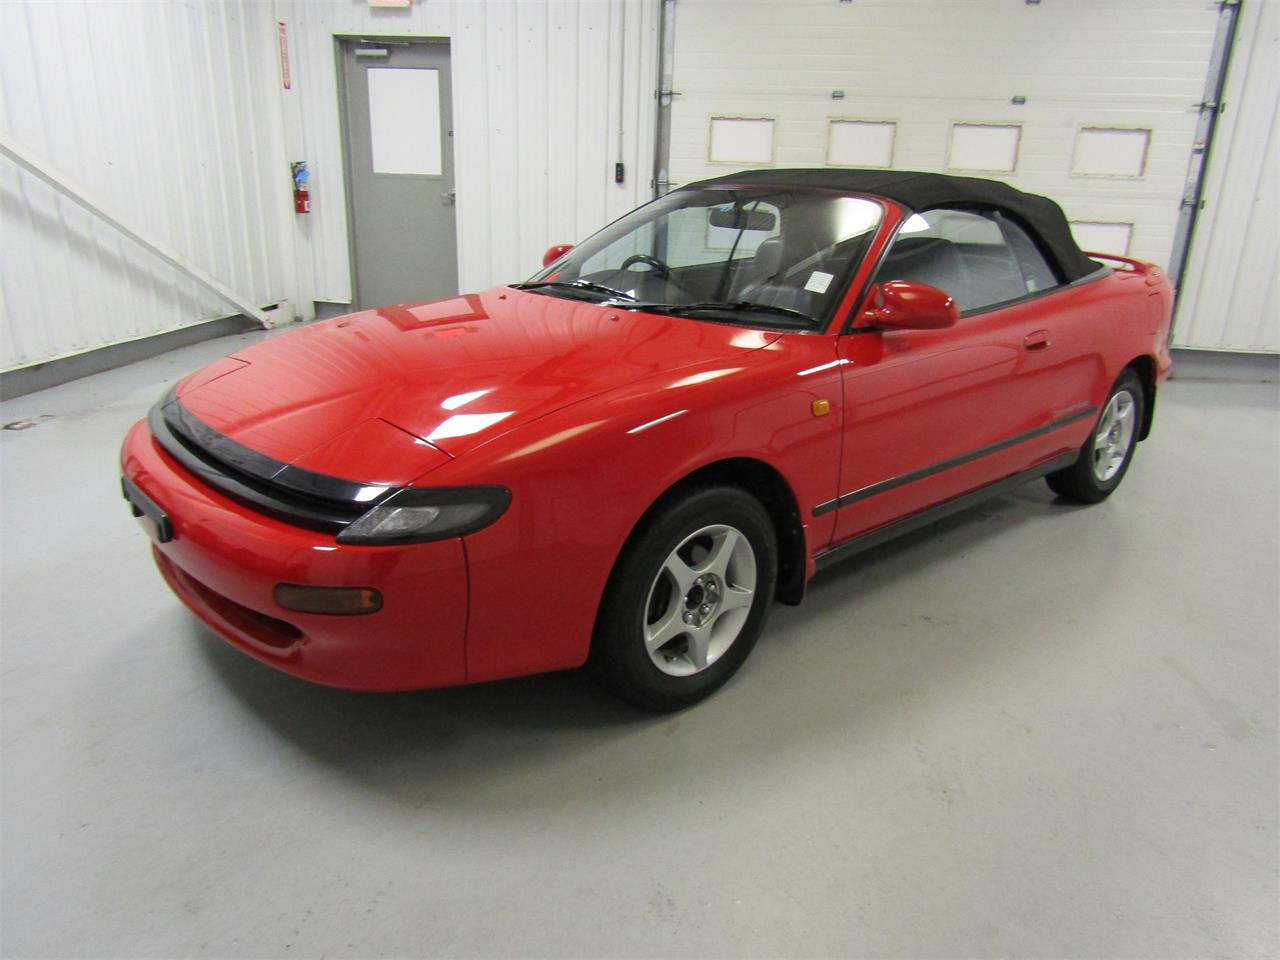 Large Picture of 1991 Toyota Celica located in Virginia - OV71